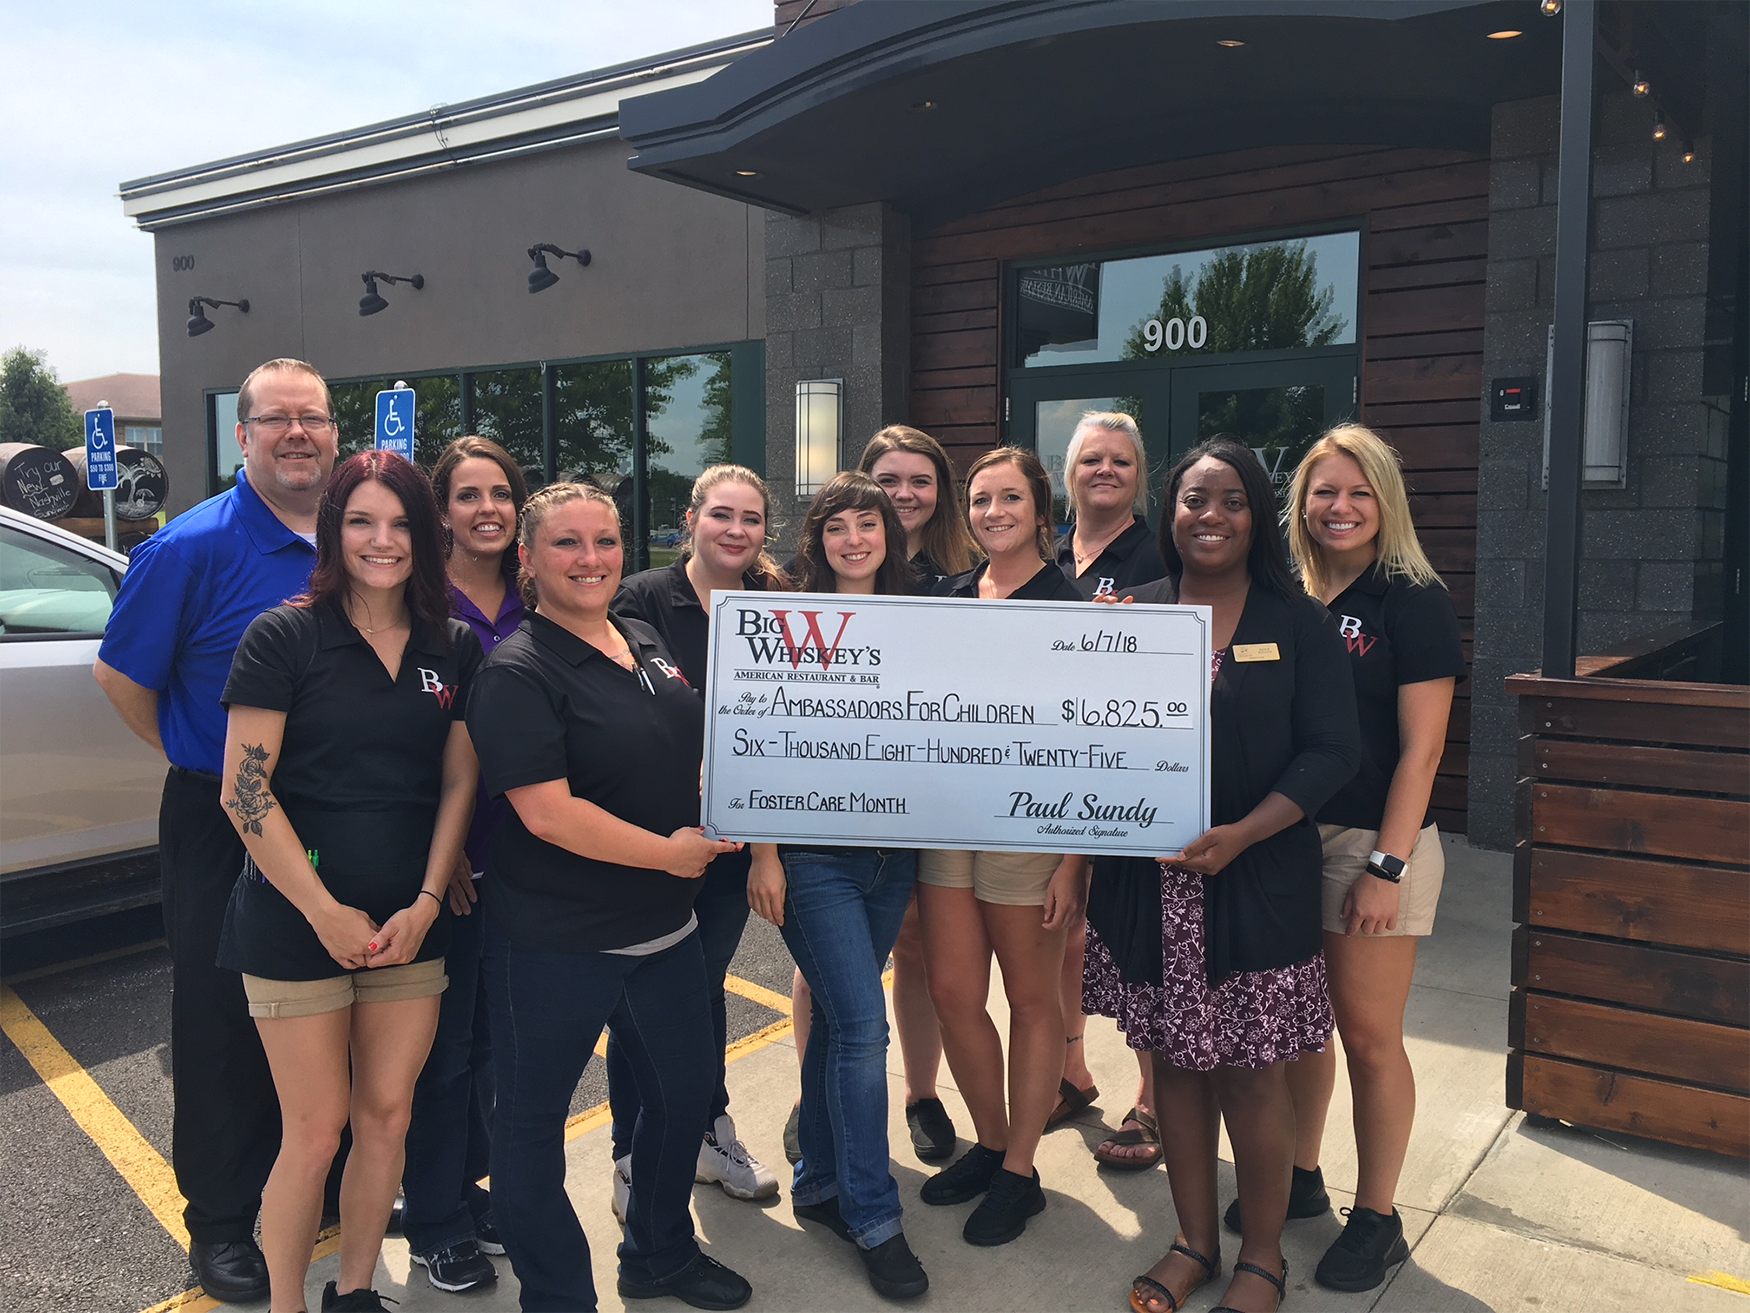 Annual Fundraiser For Foster Care Month A Huge Success